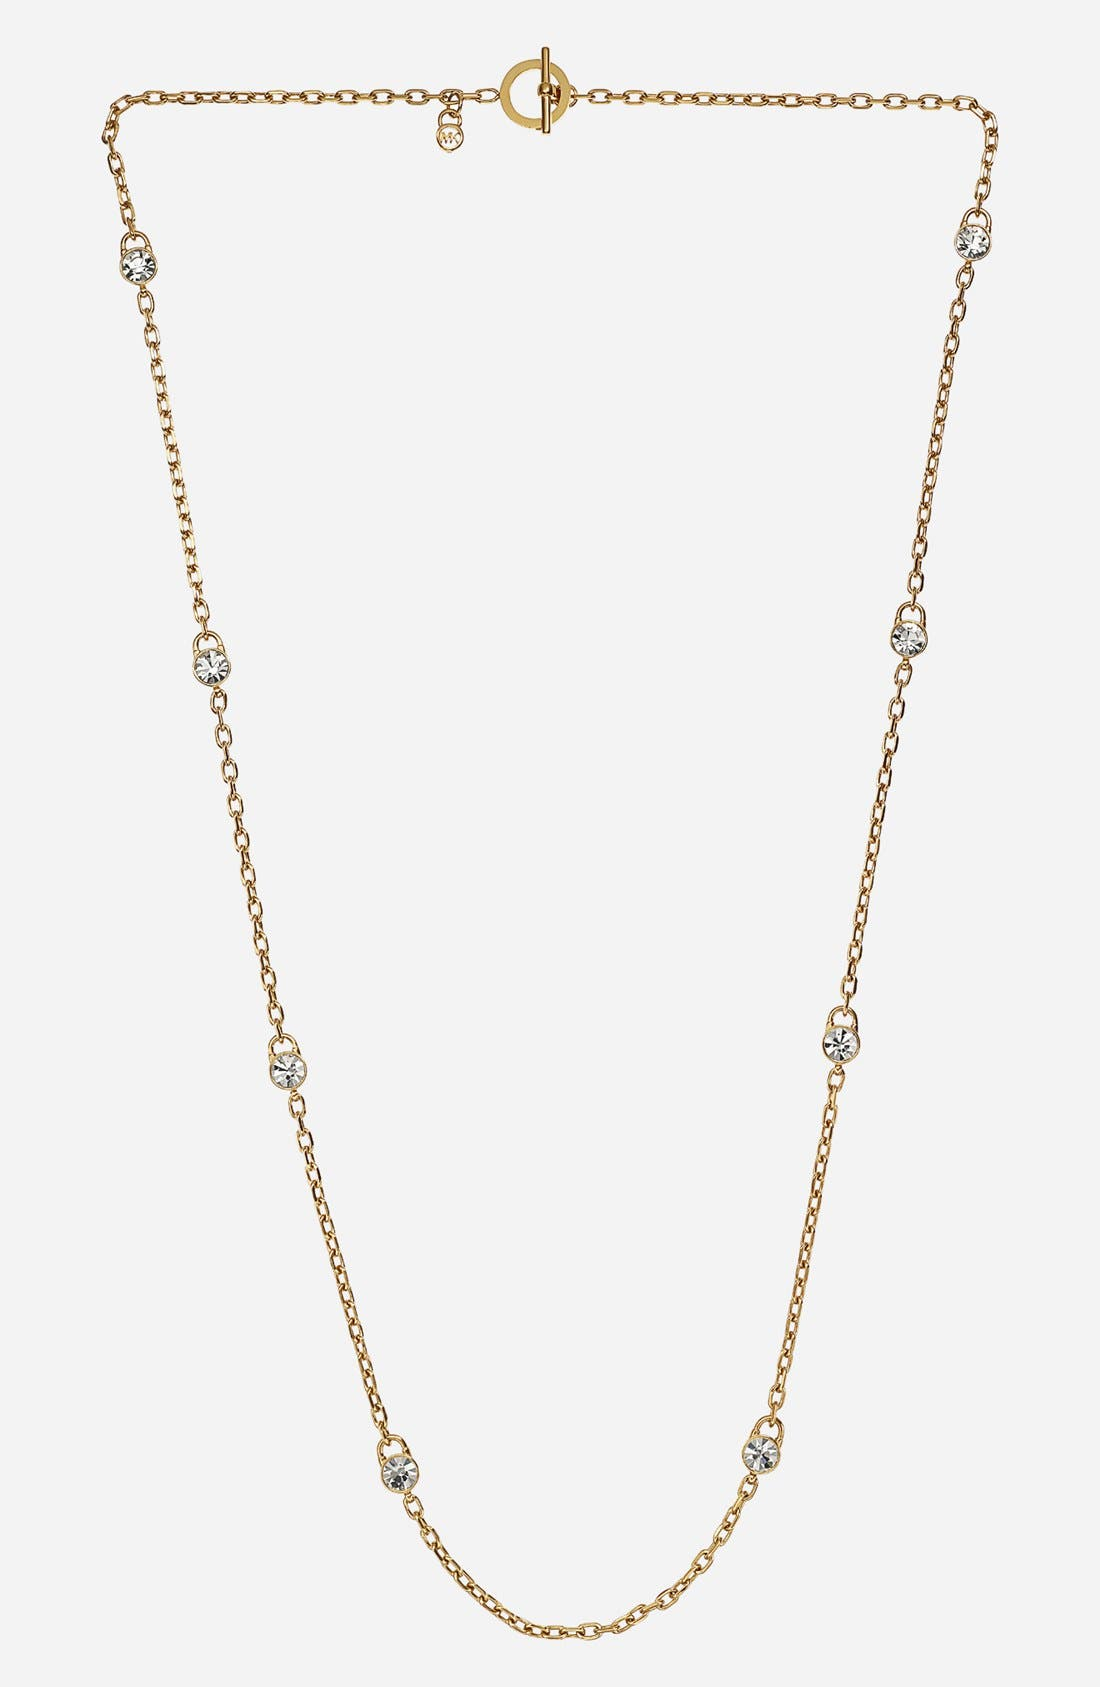 Main Image - Michael Kors 'Brilliance Botanicals' Lock Station Long Necklace